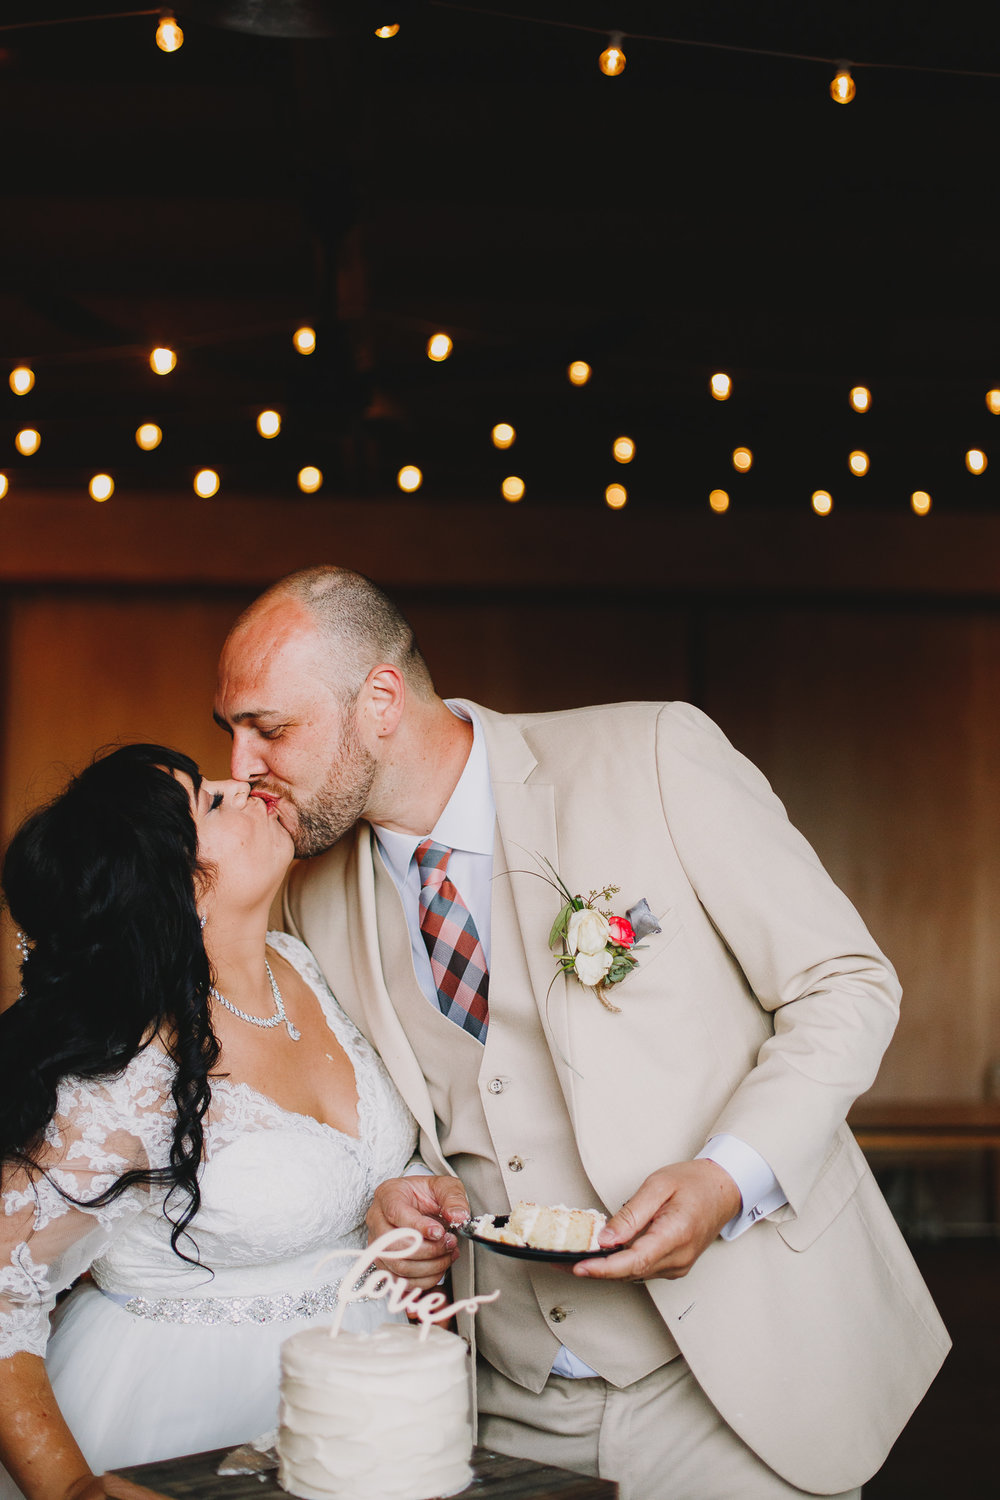 Archer Inspired Photography Fitz Place San Martin Wedding Lifestyle Documentary Affordable Photographer South Bay-692.jpg